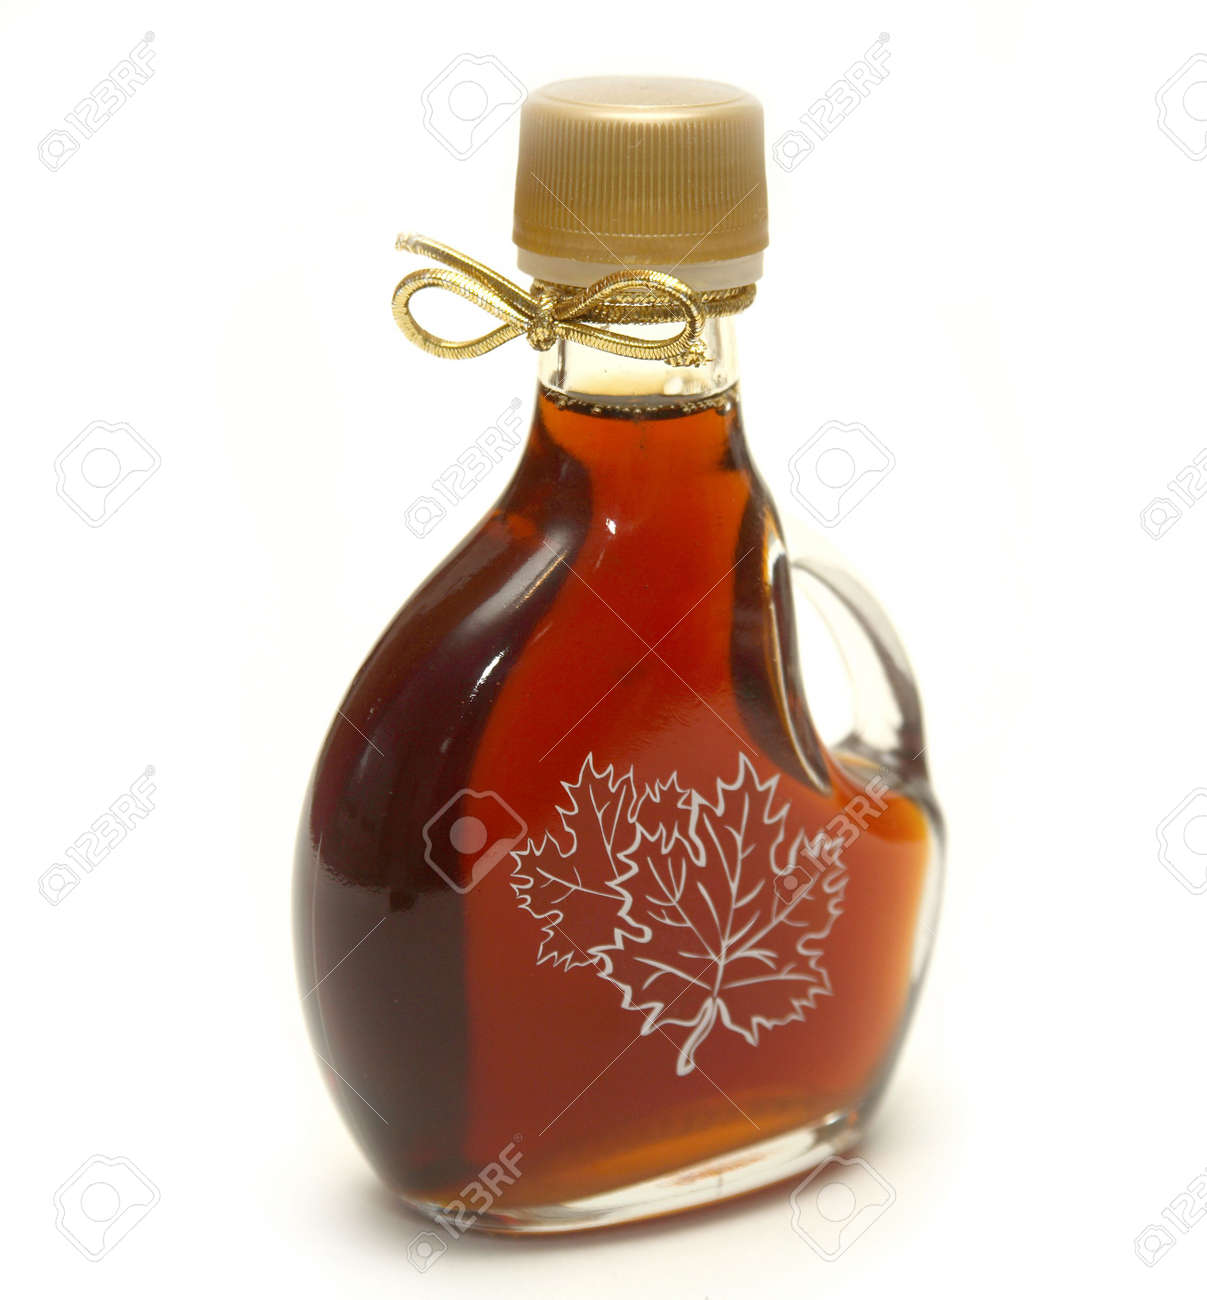 Maple Leaf Syrup Bottles a Small Bottle of Maple Syrup